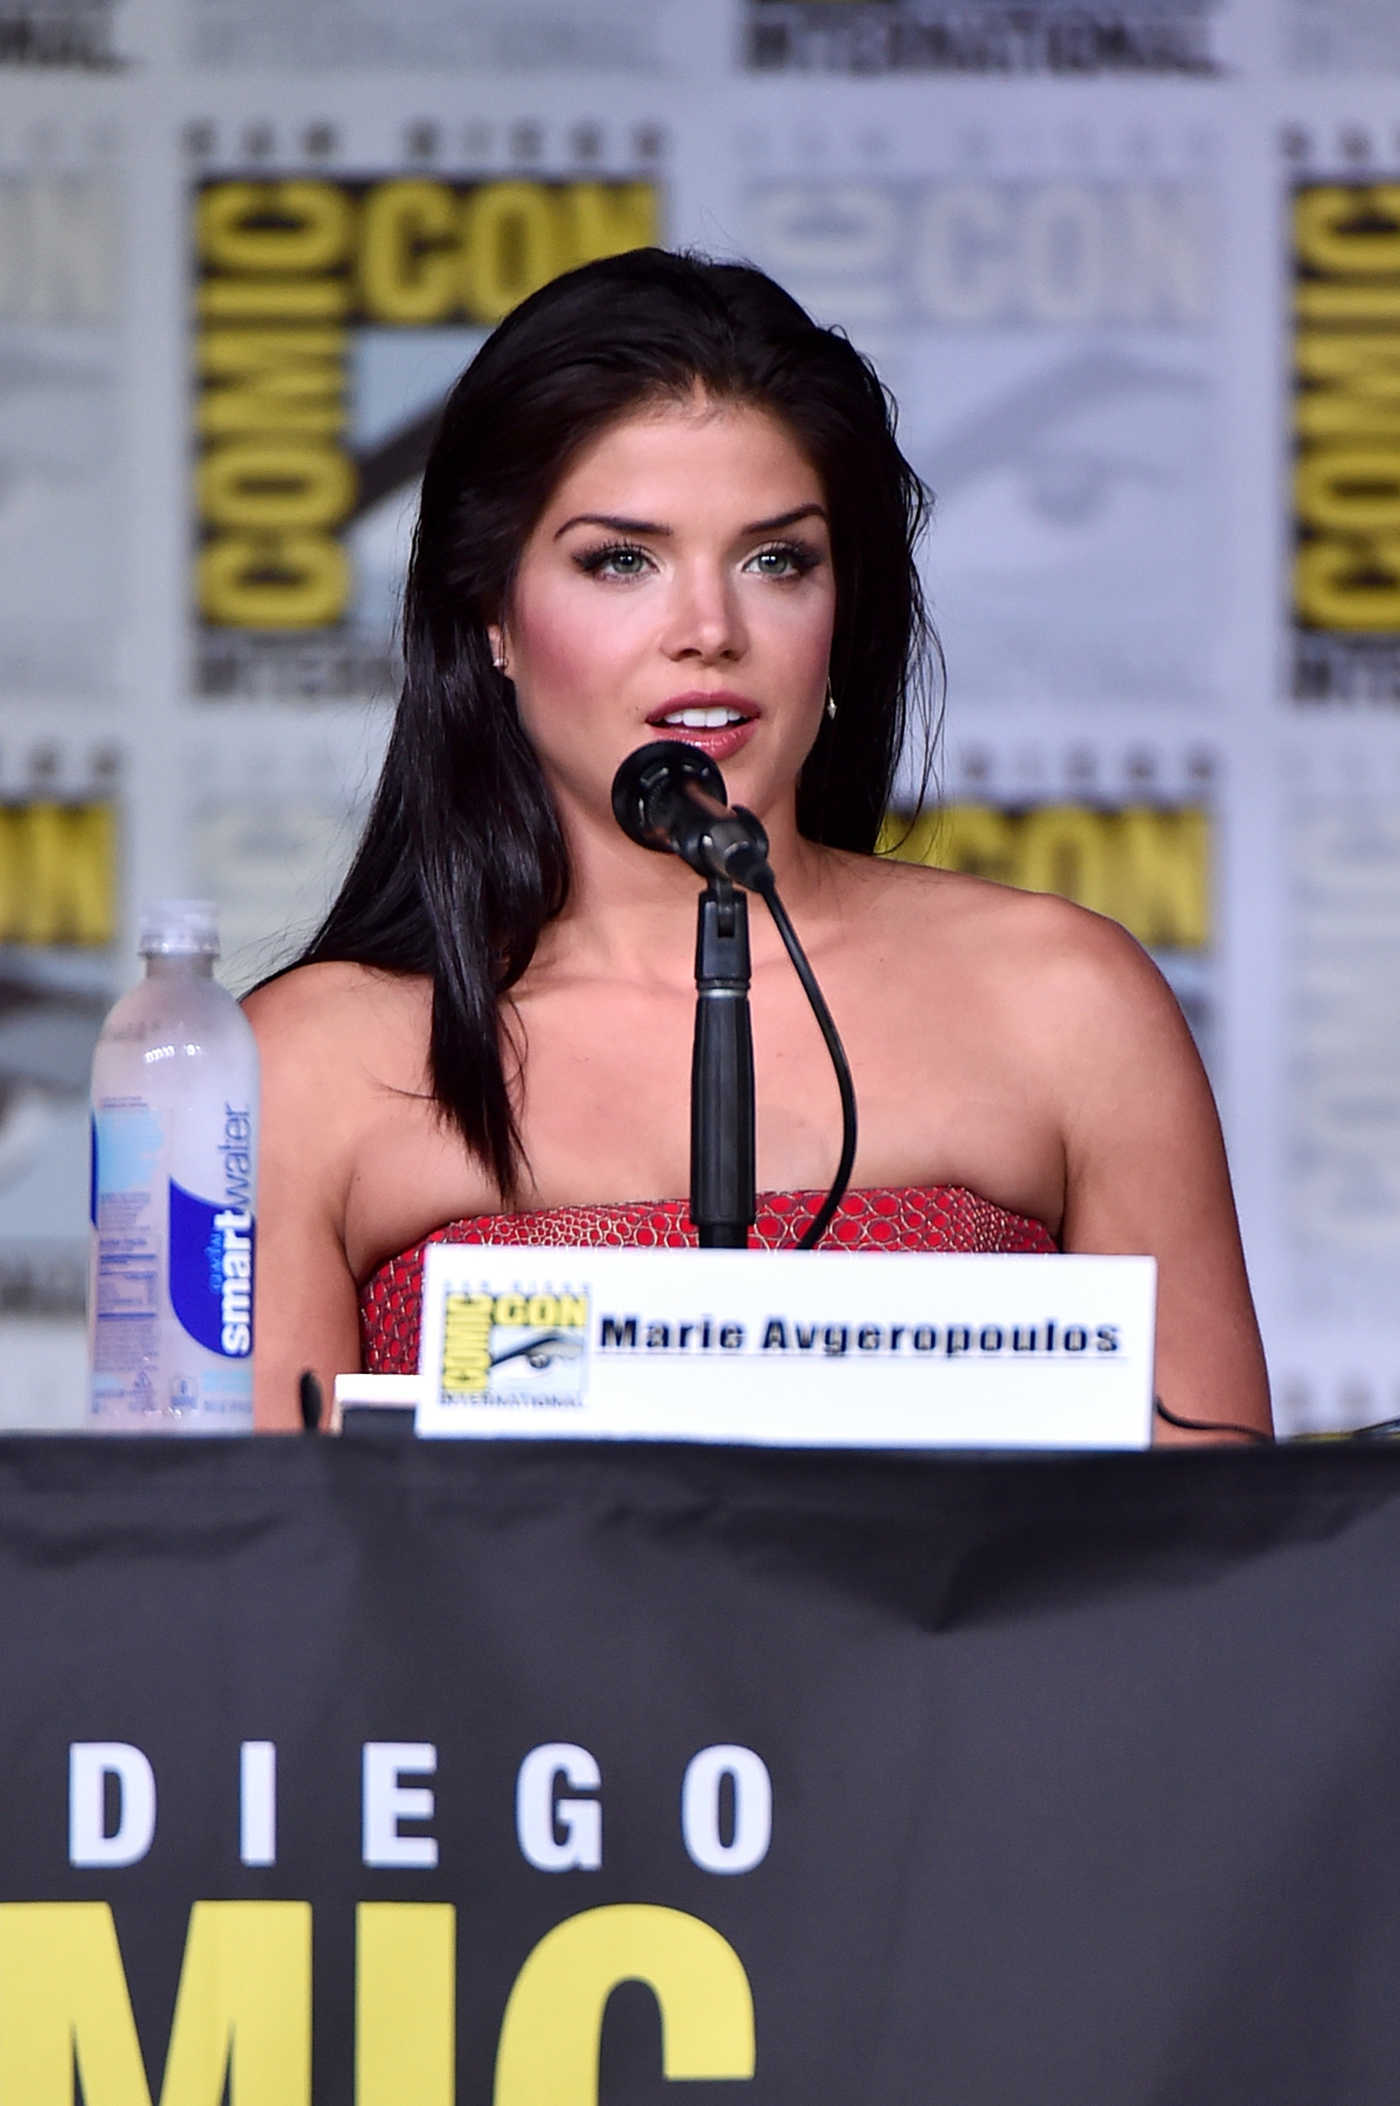 Marie Avgeropoulos at The 100 Panel at Comic-Con International in San Diego 07/22/2016